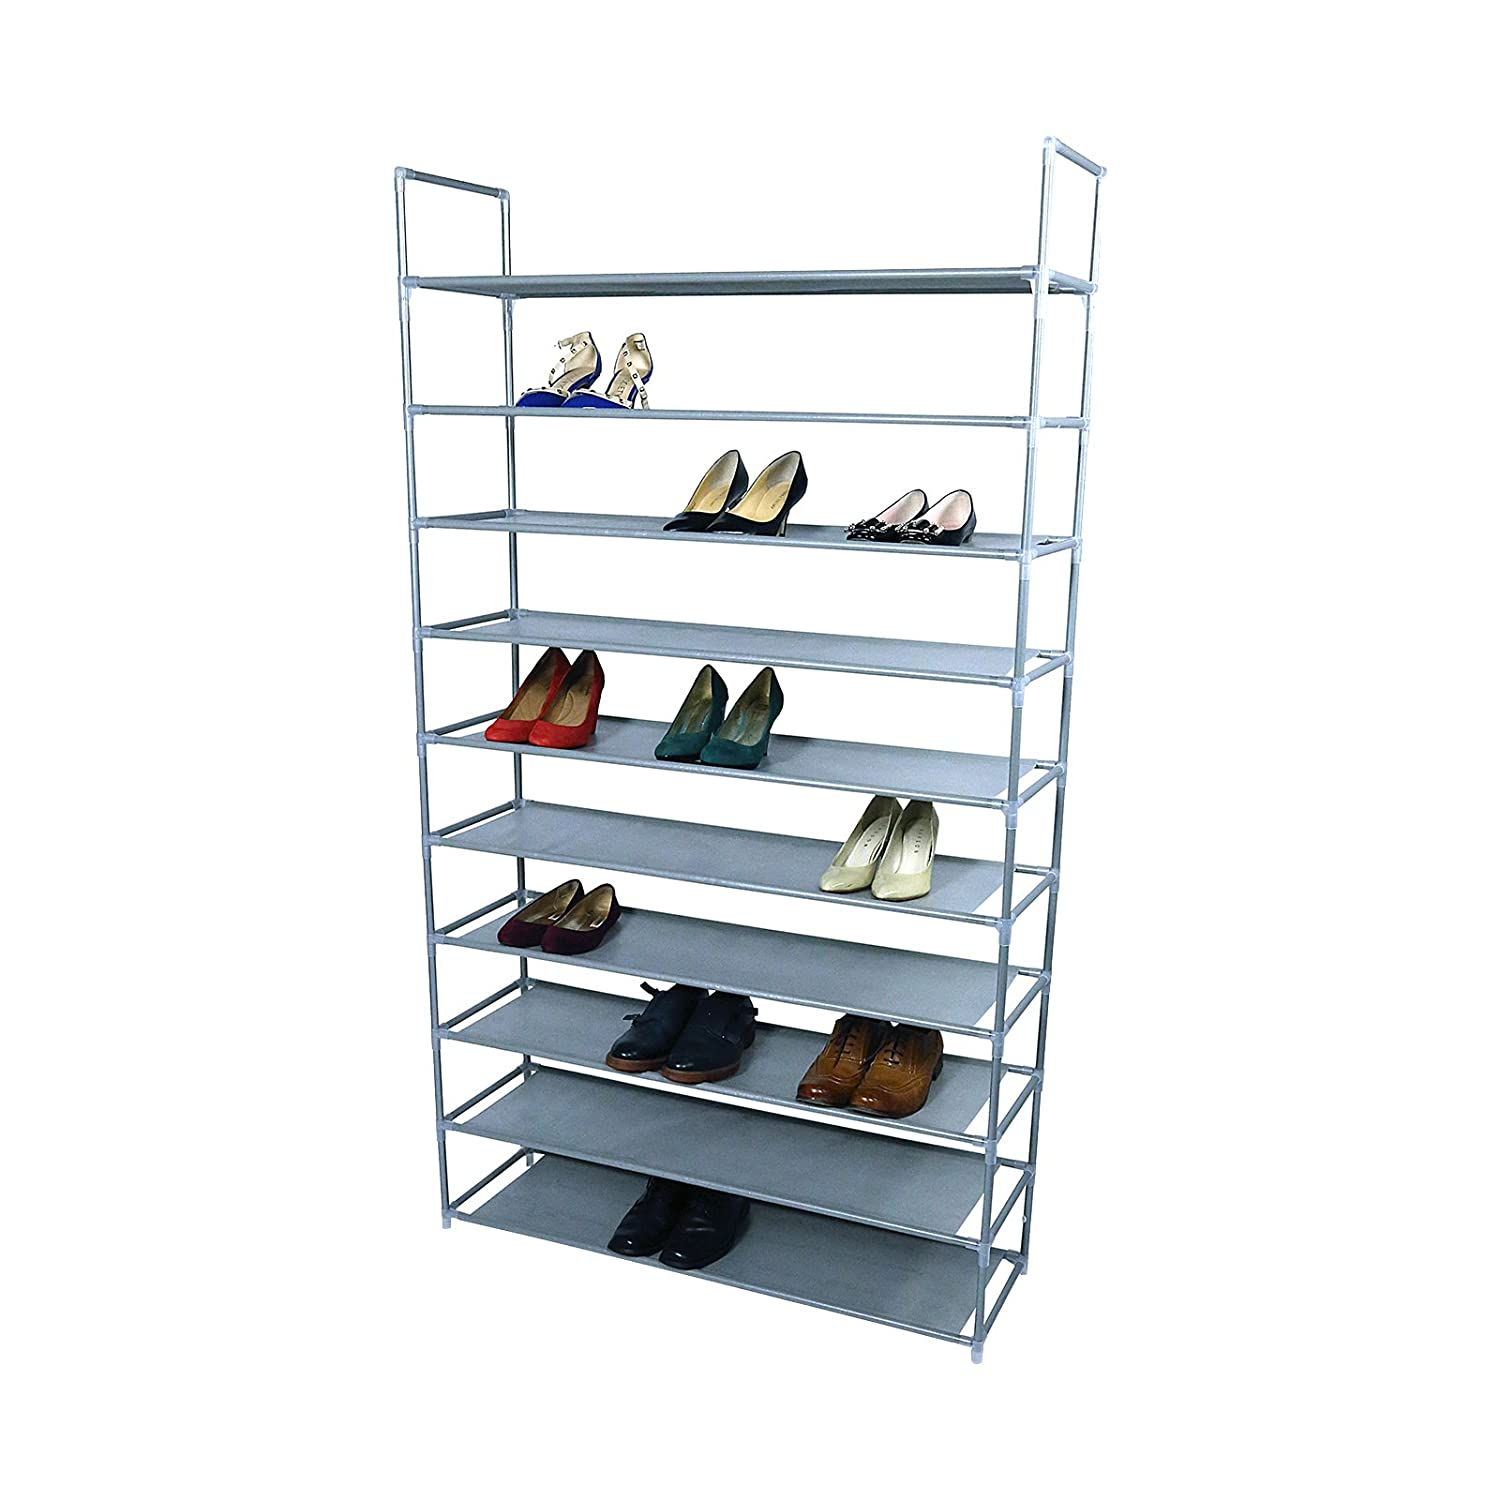 Amazon.com SmartHome 10 Tiers Shoe Rack 50 Pairs Non-woven Fabric Shoe Tower Storage Organizer Cabinet Grey Home u0026 Kitchen  sc 1 st  Amazon.com & Amazon.com: SmartHome 10 Tiers Shoe Rack 50 Pairs Non-woven Fabric ...